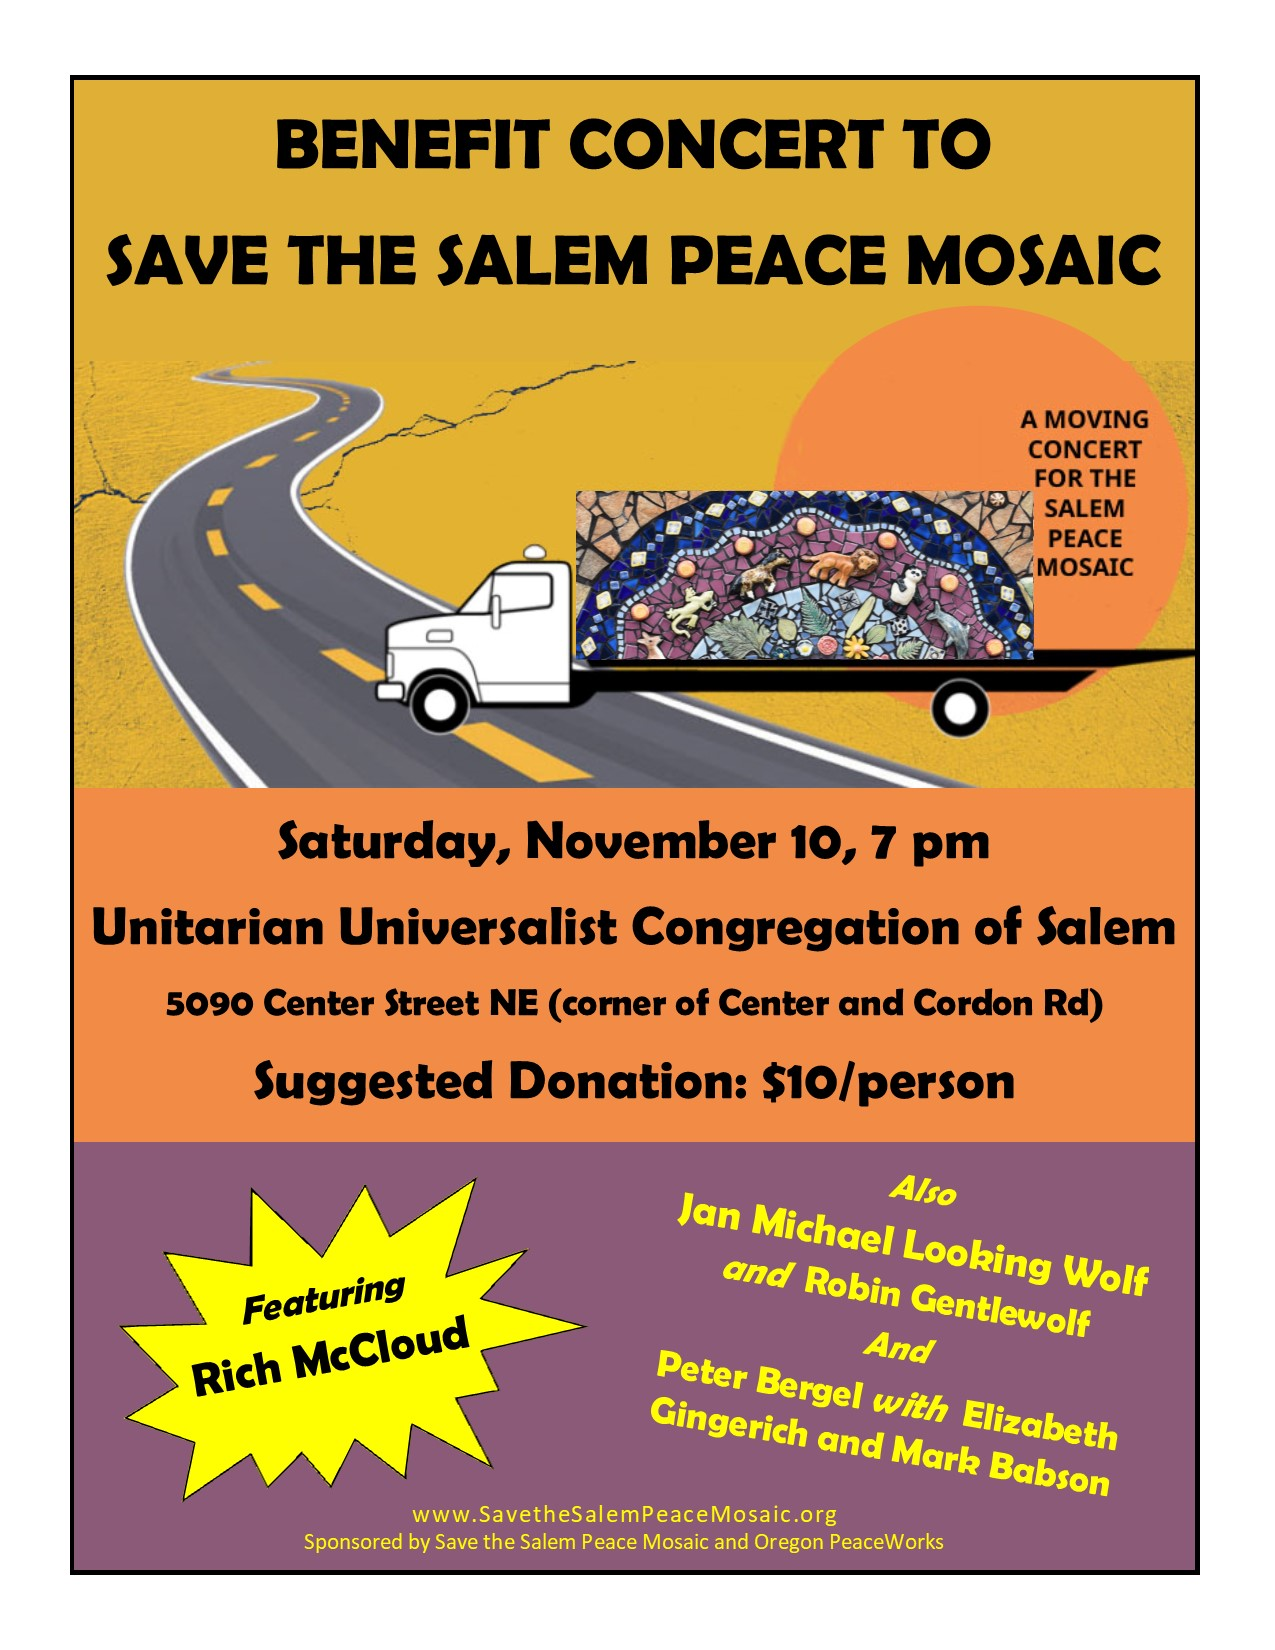 BENEFIT CONCERT TO SAVE THE SALEM PEACE MOSAIC